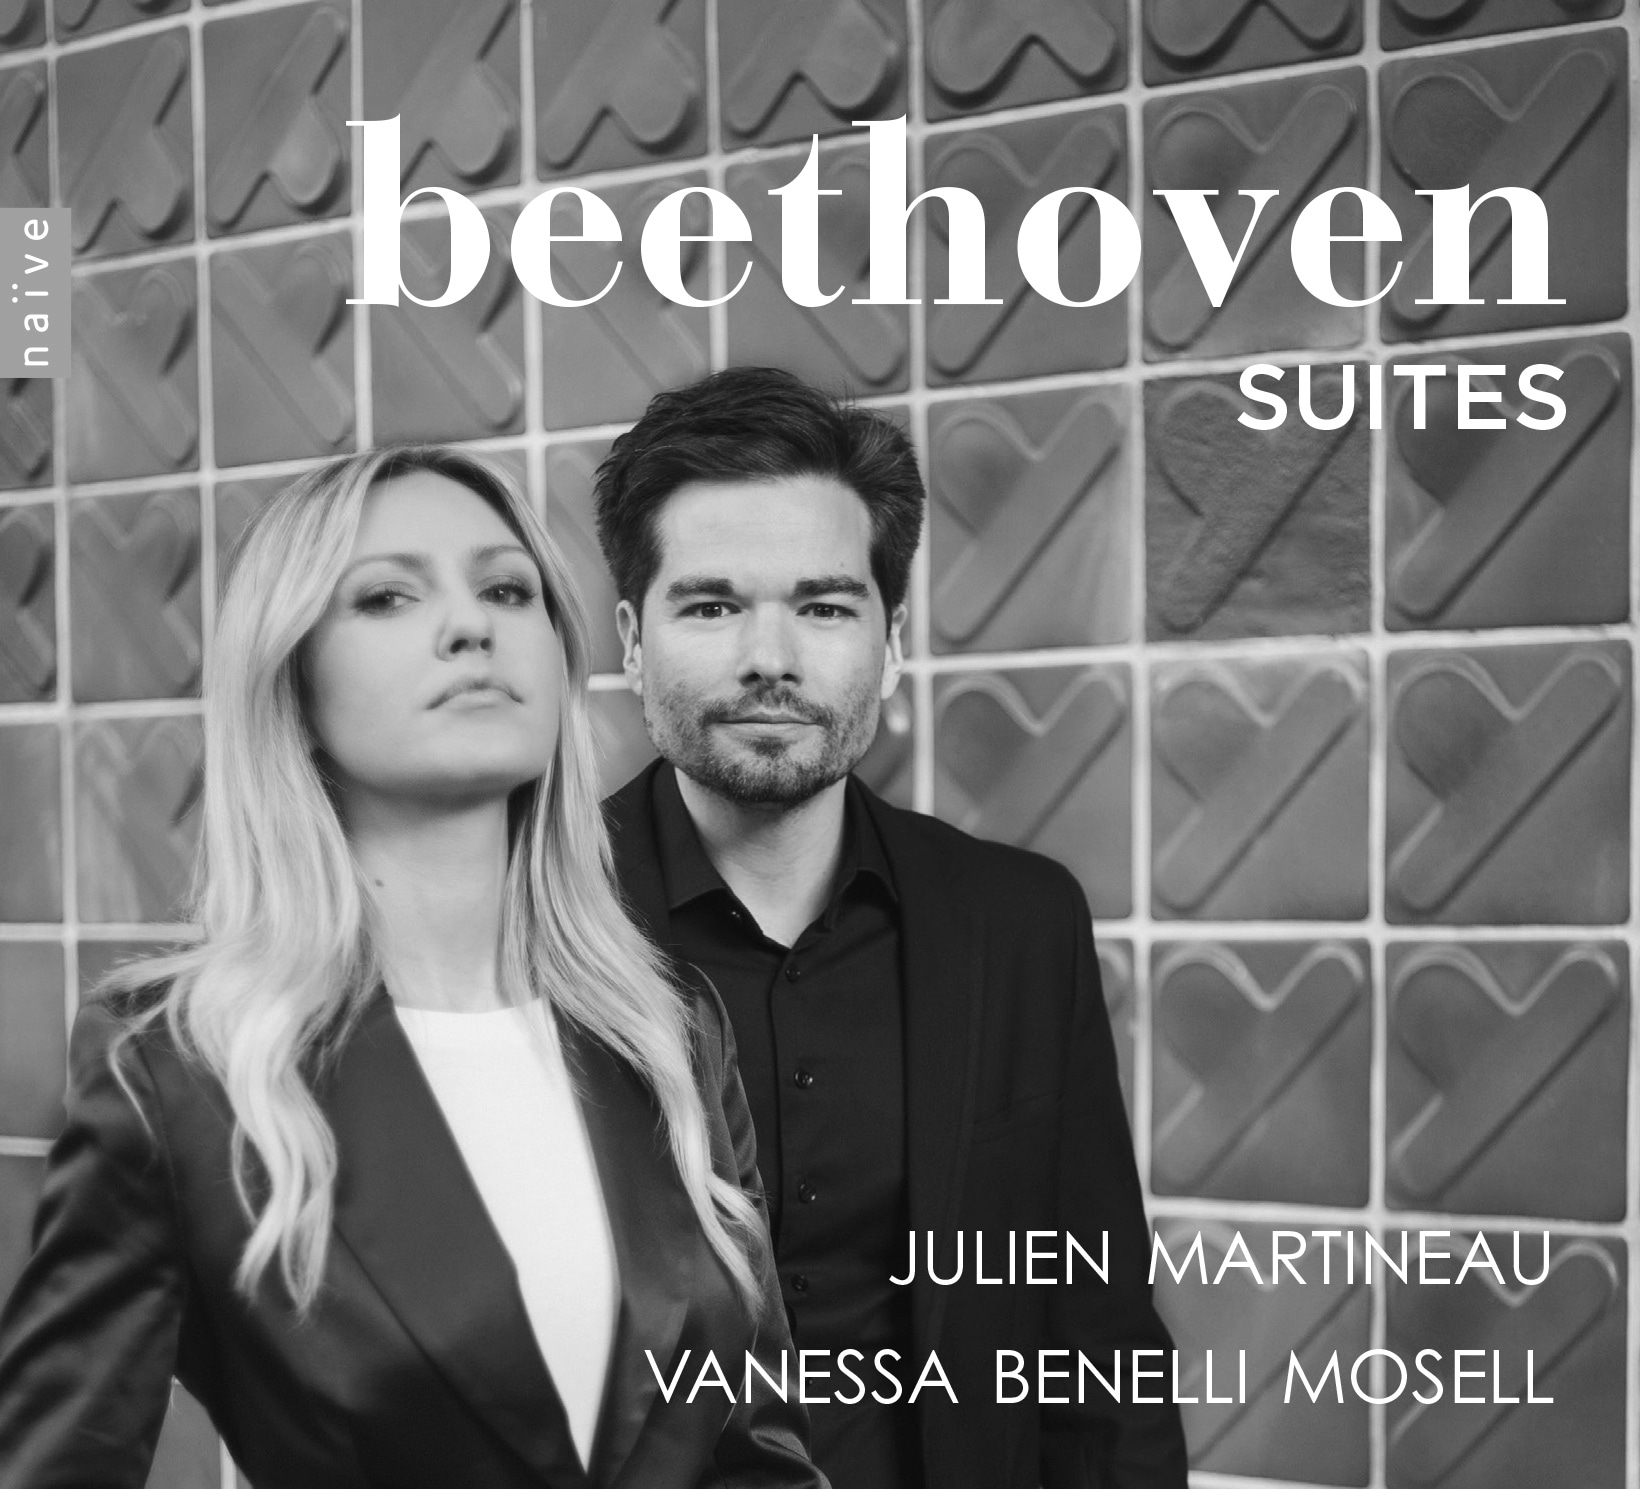 Beethoven Suites Martineau